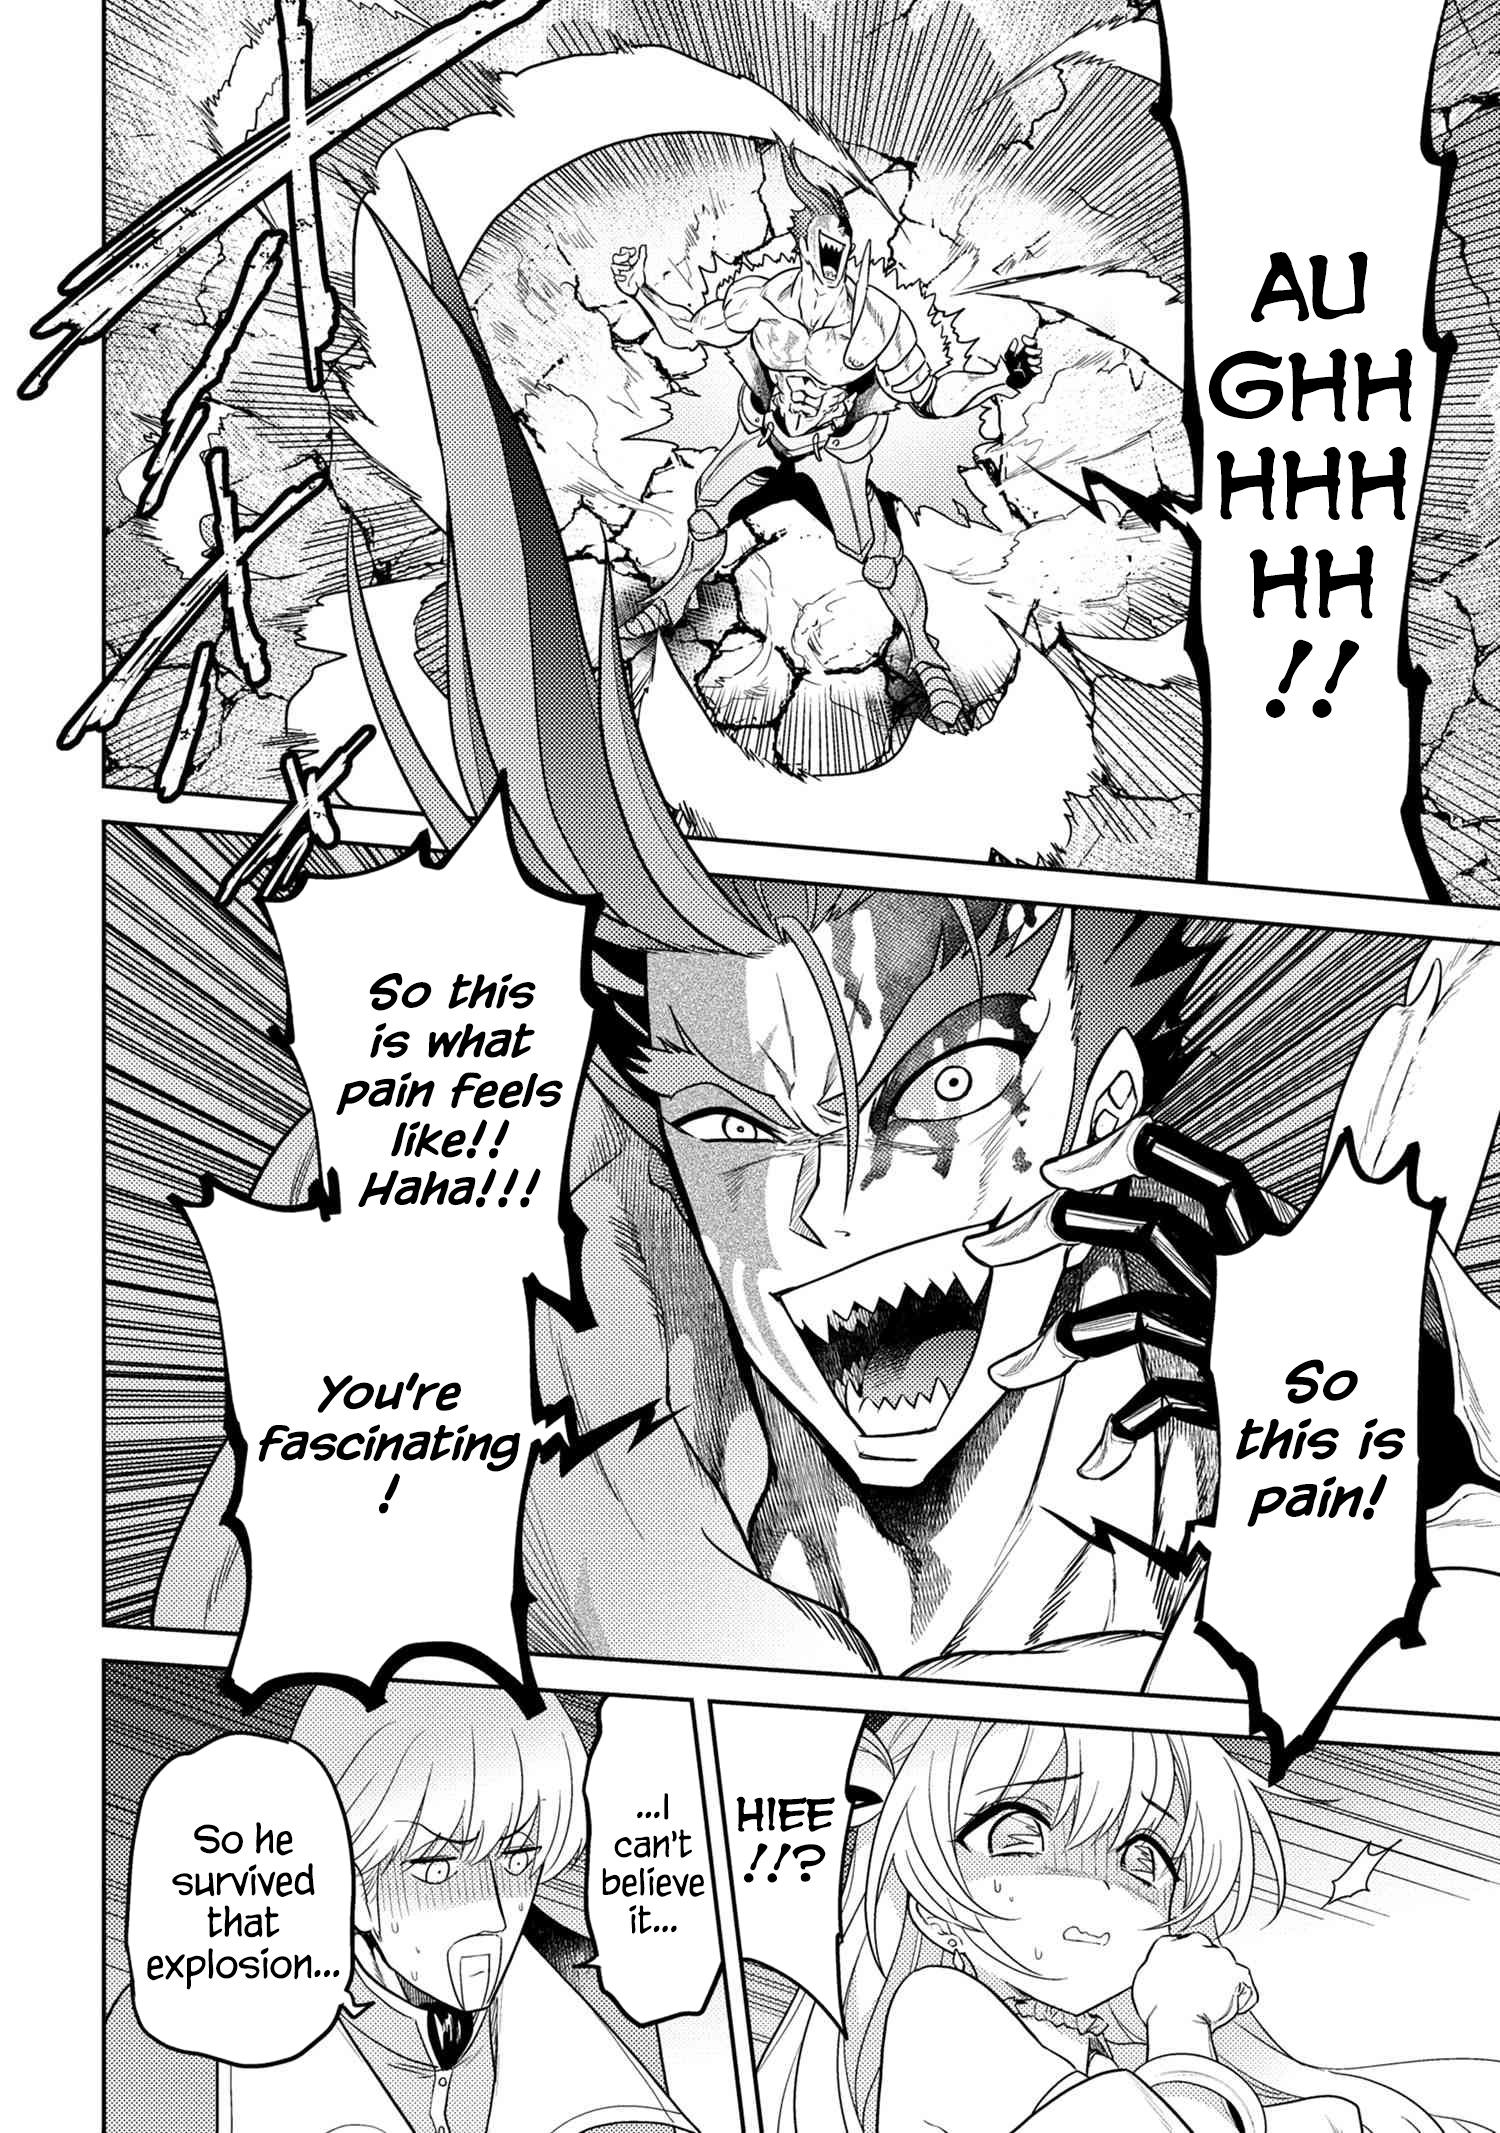 Manga The World's Best Assassin, Reincarnated in a Different World as an Aristocrat - Chapter 8.2 Page 16